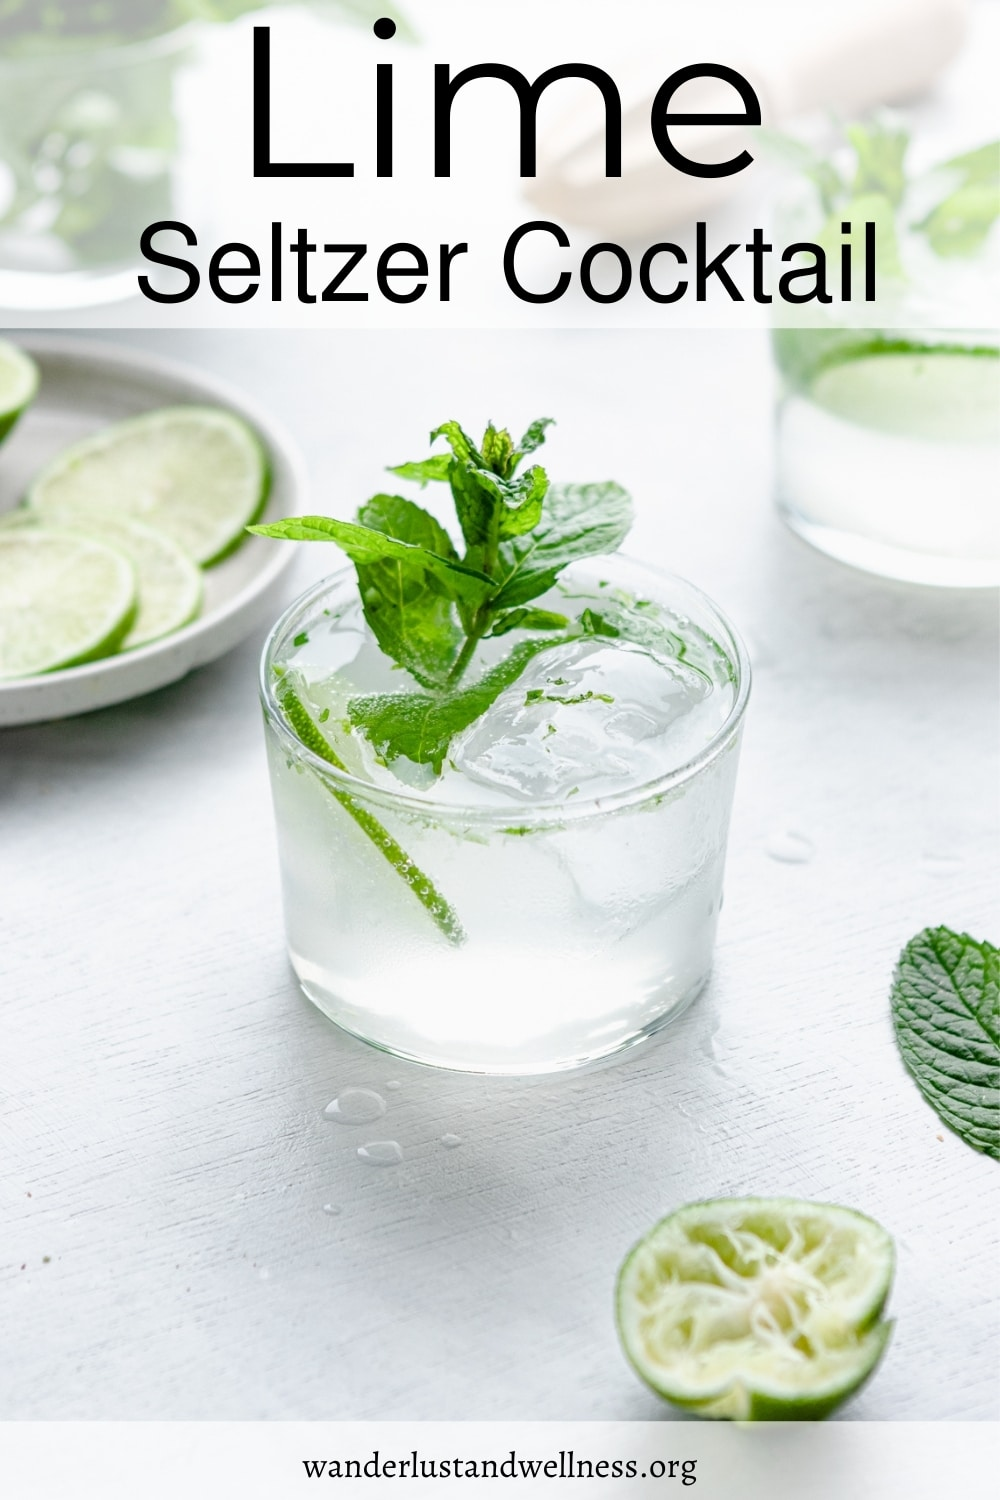 a glass of lime seltzer cocktail